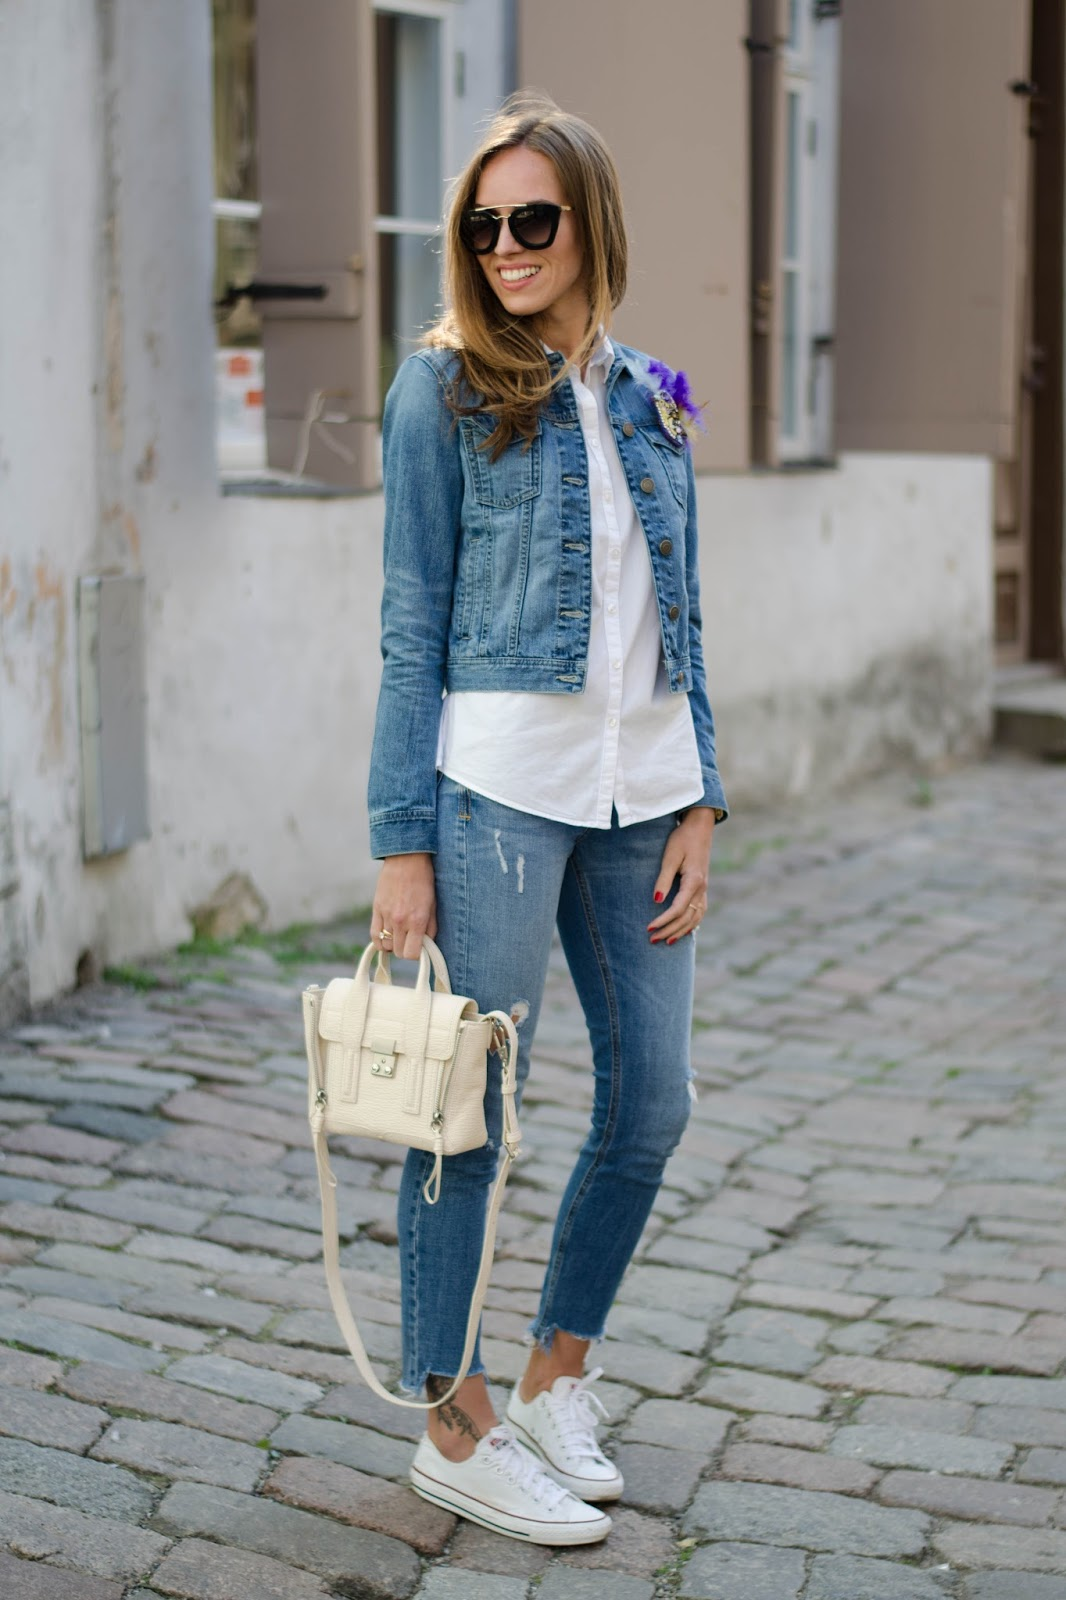 kristjaana mere denim jacket white shirt converse spring casual outfit